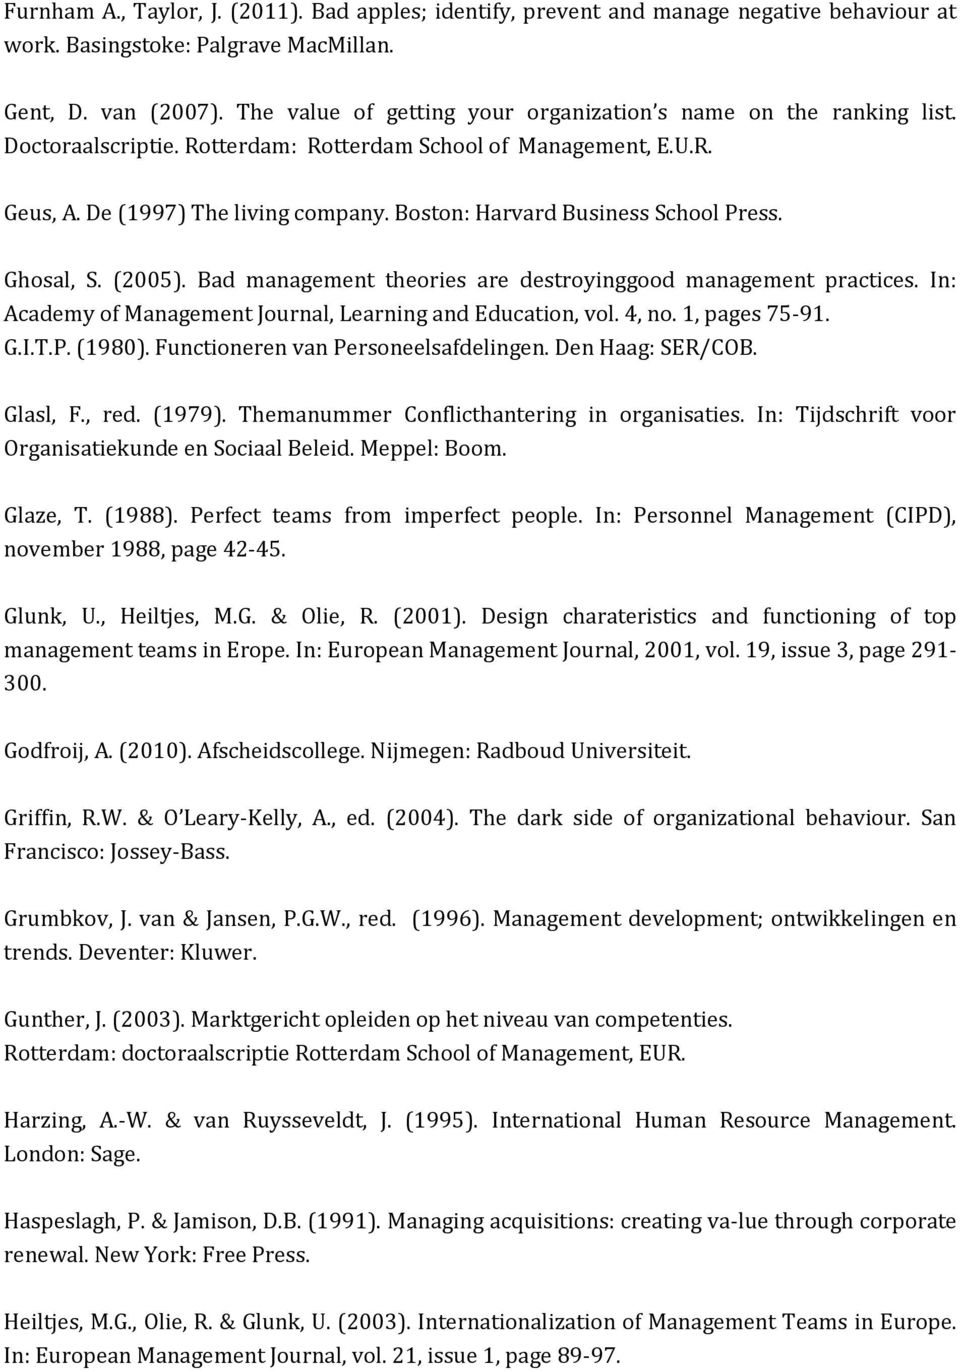 Boston: Harvard Business School Press. Ghosal, S. (2005). Bad management theories are destroyinggood management practices. In: Academy of Management Journal, Learning and Education, vol. 4, no.